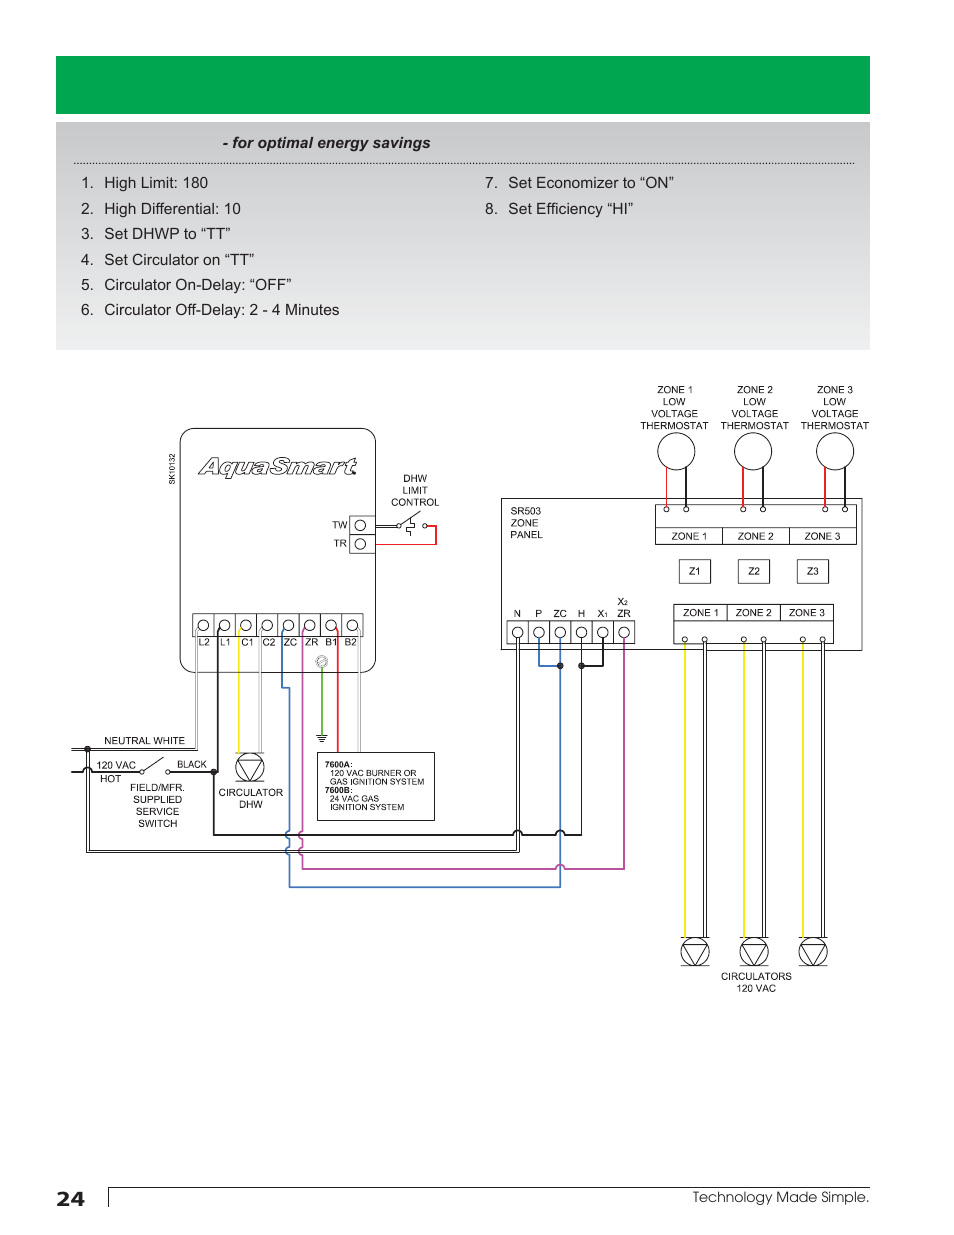 Beckett Aquasmart Wiring User Manual Page 24 48 Taco Circulator For